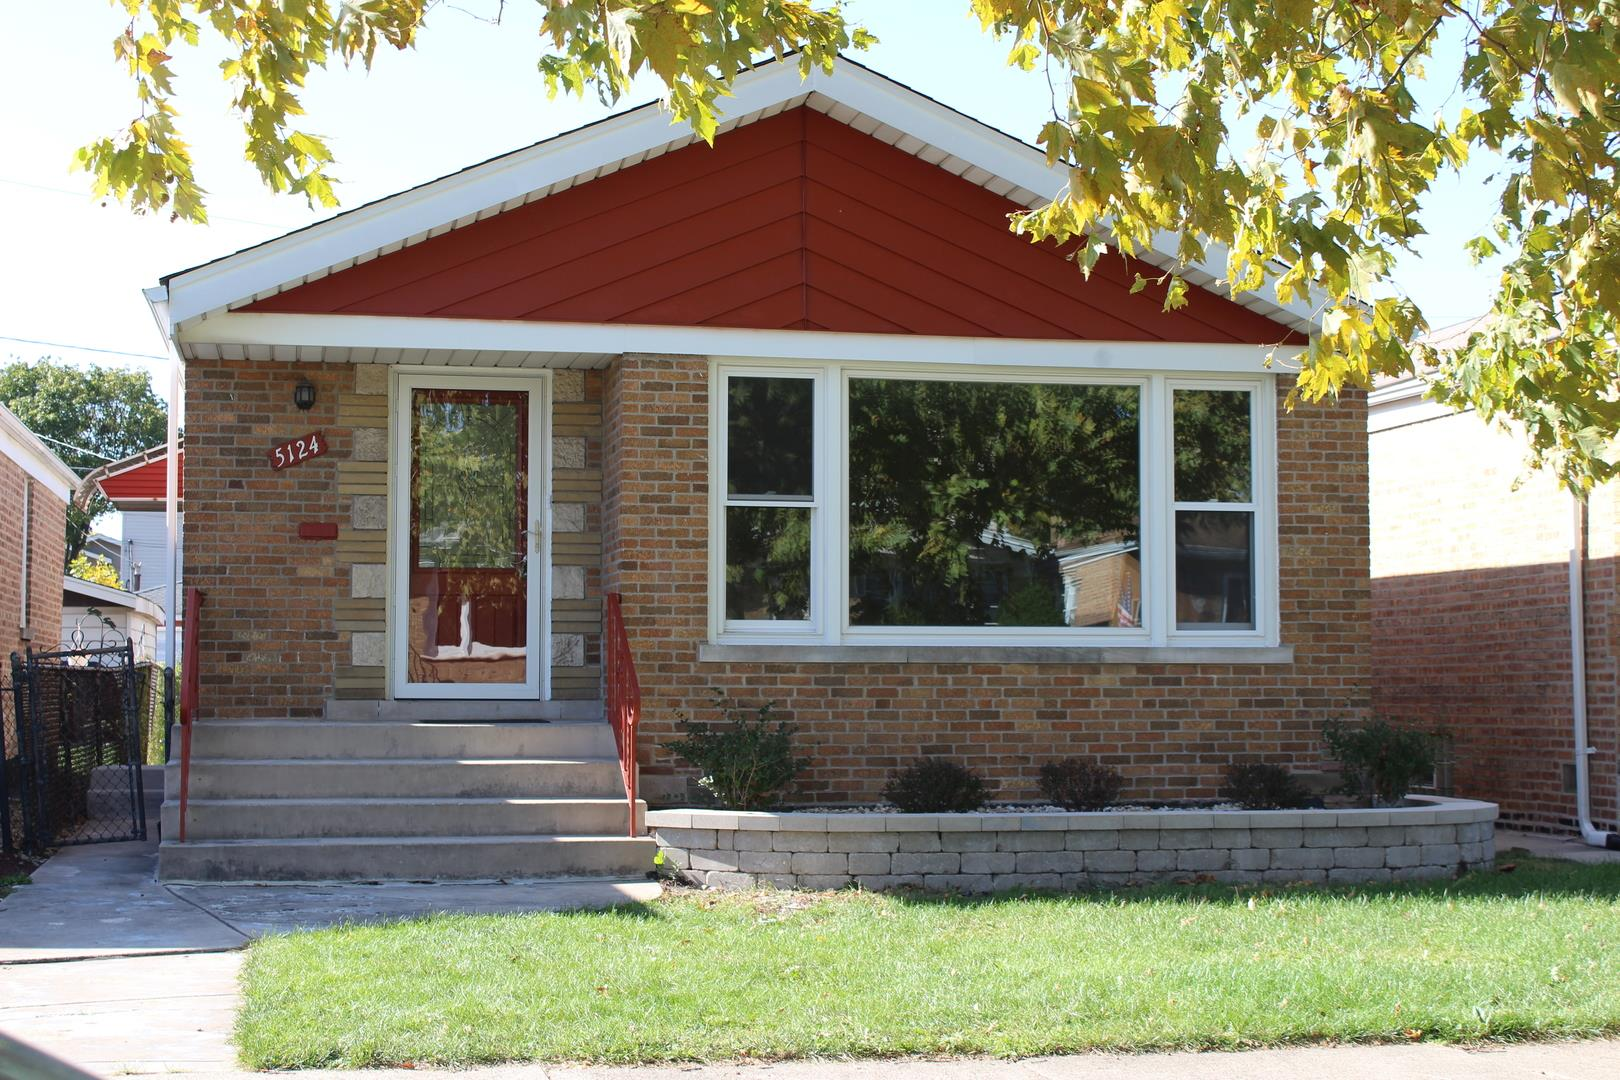 5124 S RUTHERFORD Avenue, Chicago, IL 60638 - #: 10892298